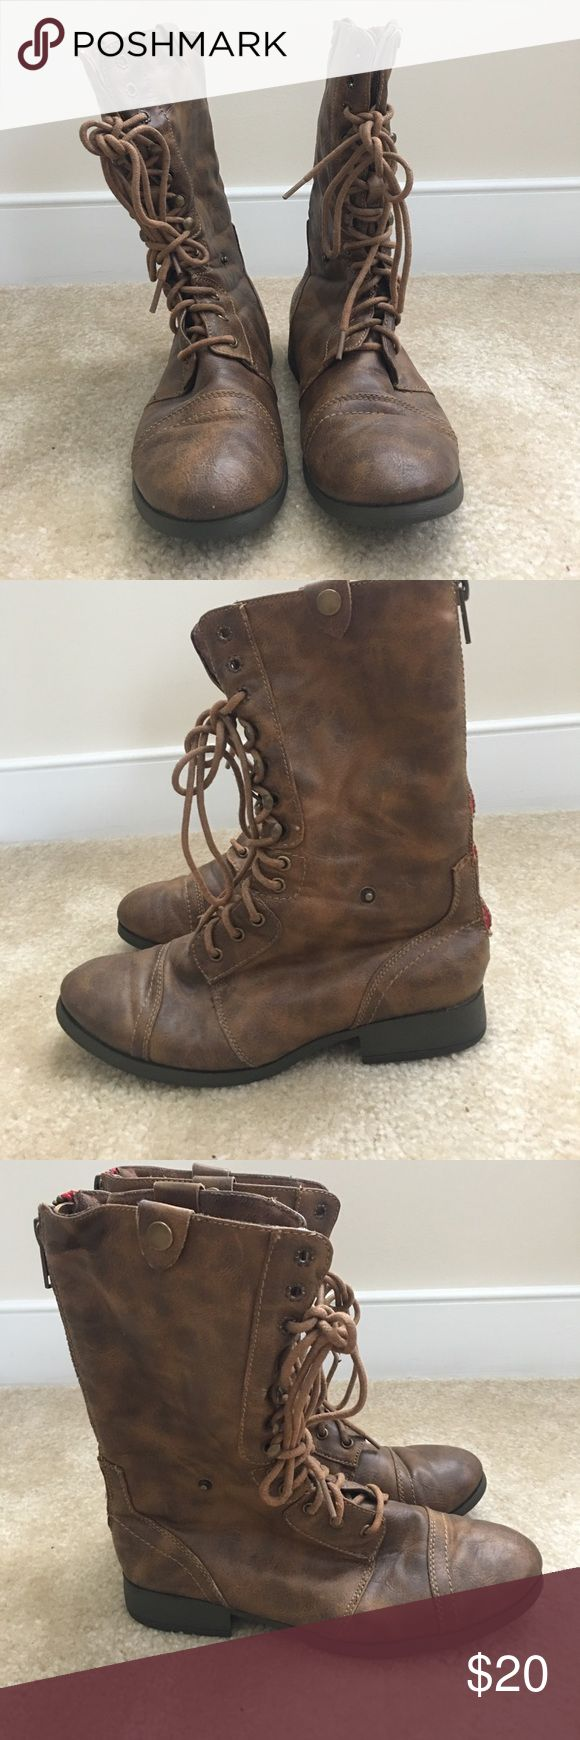 Women's combat boots. Size 7. Awesome condition!! Women's combat boots. Barely worn. They had a cool distressed look when I bought them. They also have the option to be worn zipped up or folded down!! When folded down it has a sweater type material. American Eagle Outfitters Shoes Combat & Moto Boots